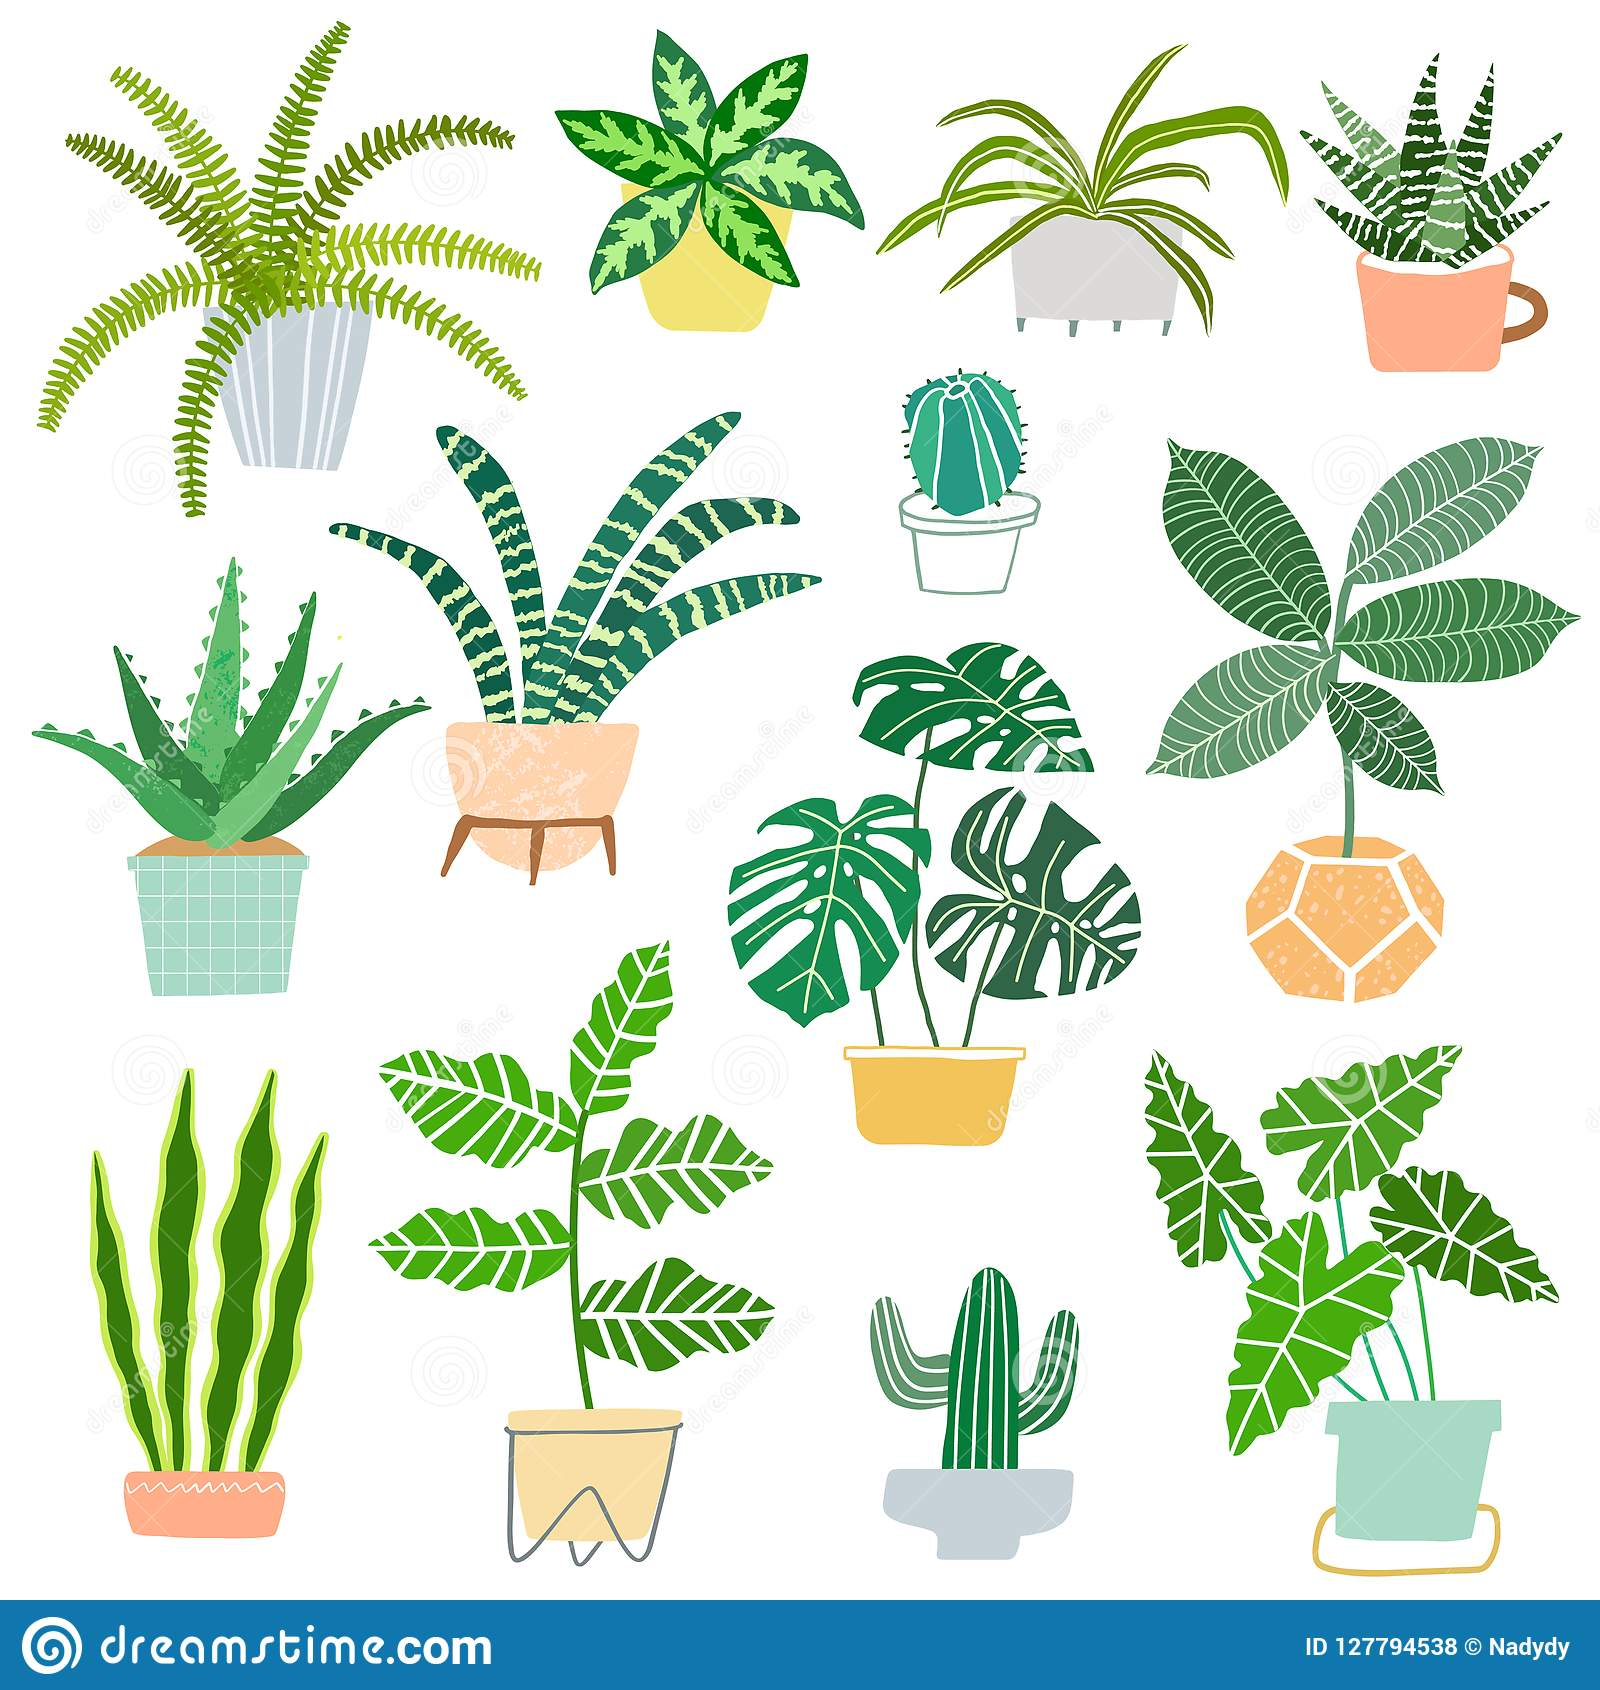 House Plants Pot Vector Illustration Indoor House Plants Isolated On White Background Stock Vector Illustration Of House Cactus 127794538